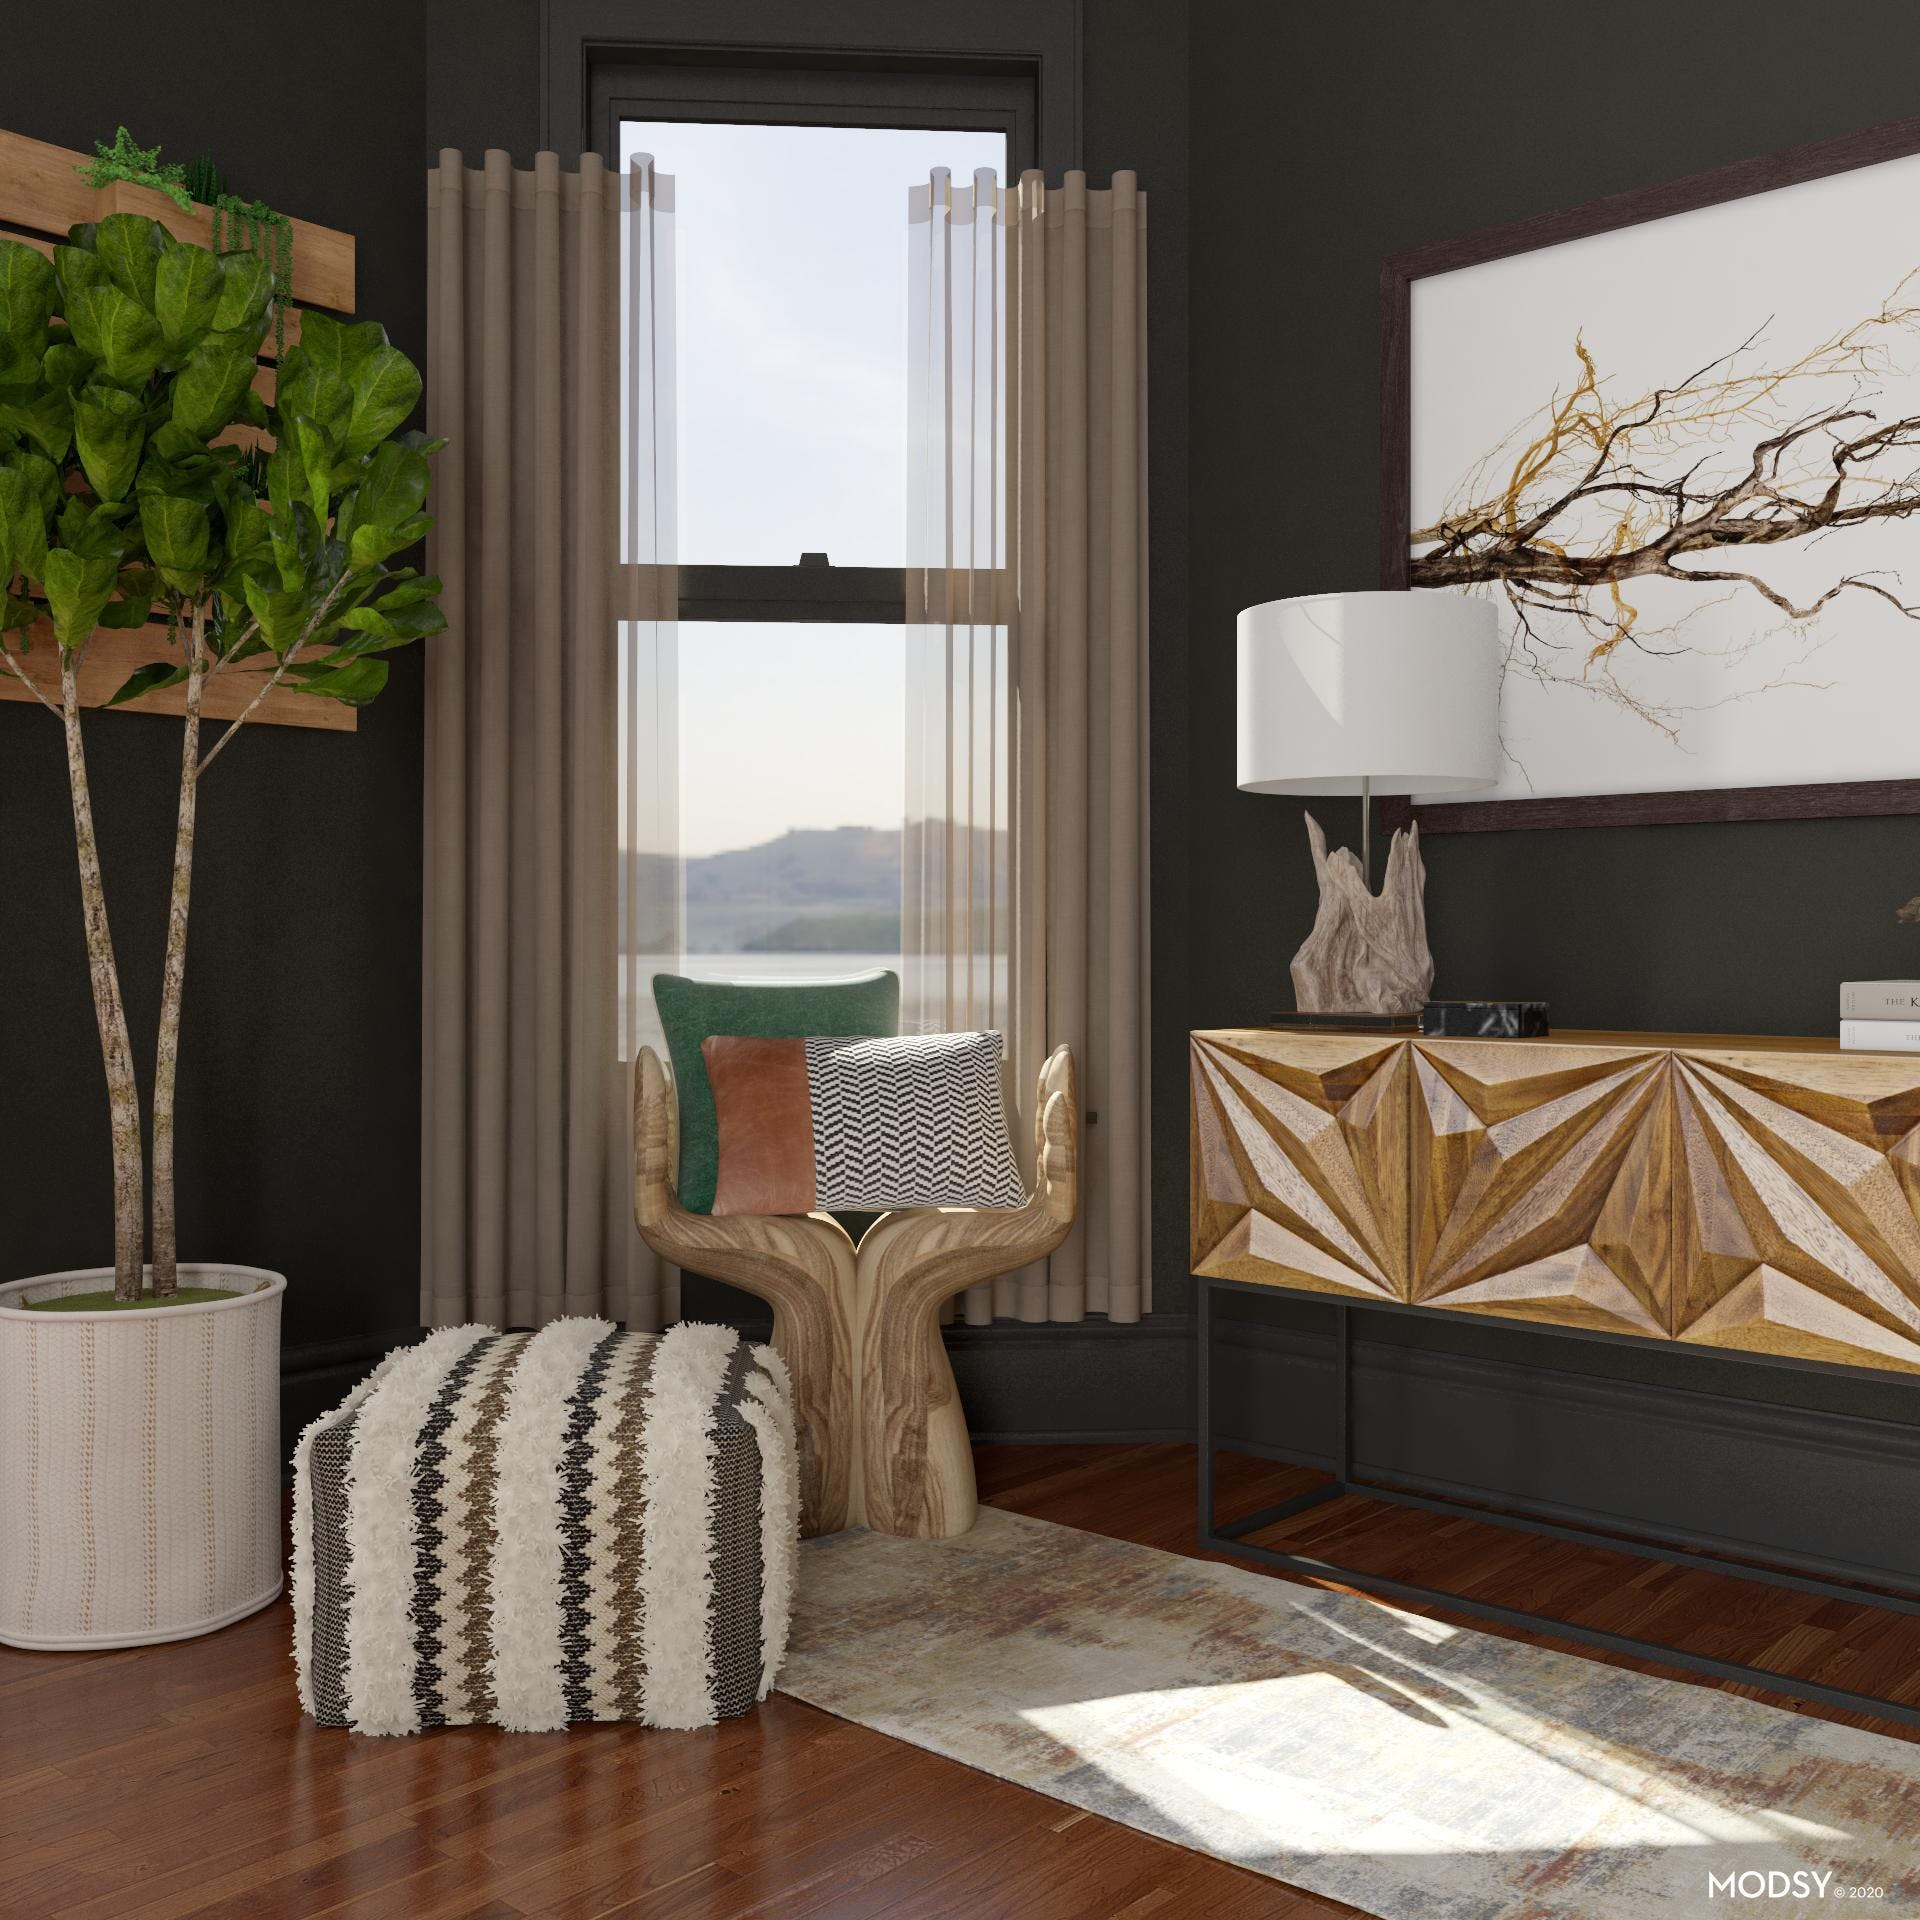 Eclectic Styling: Blend Of Tastes